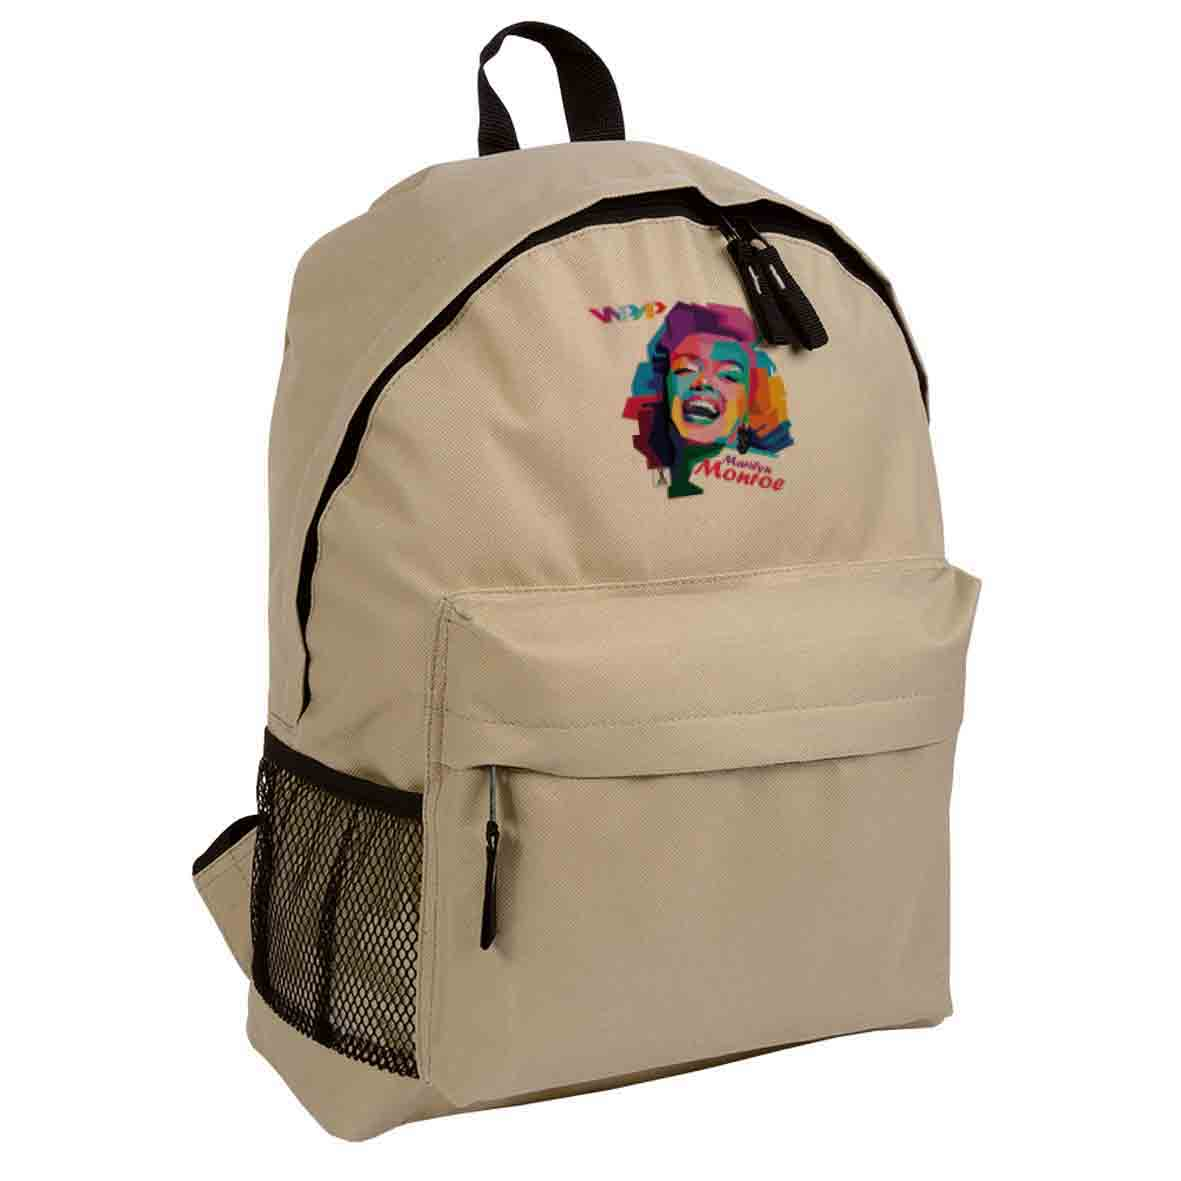 600d polyester backpack with zipped front pocket  - Beige sip-1310122 subl